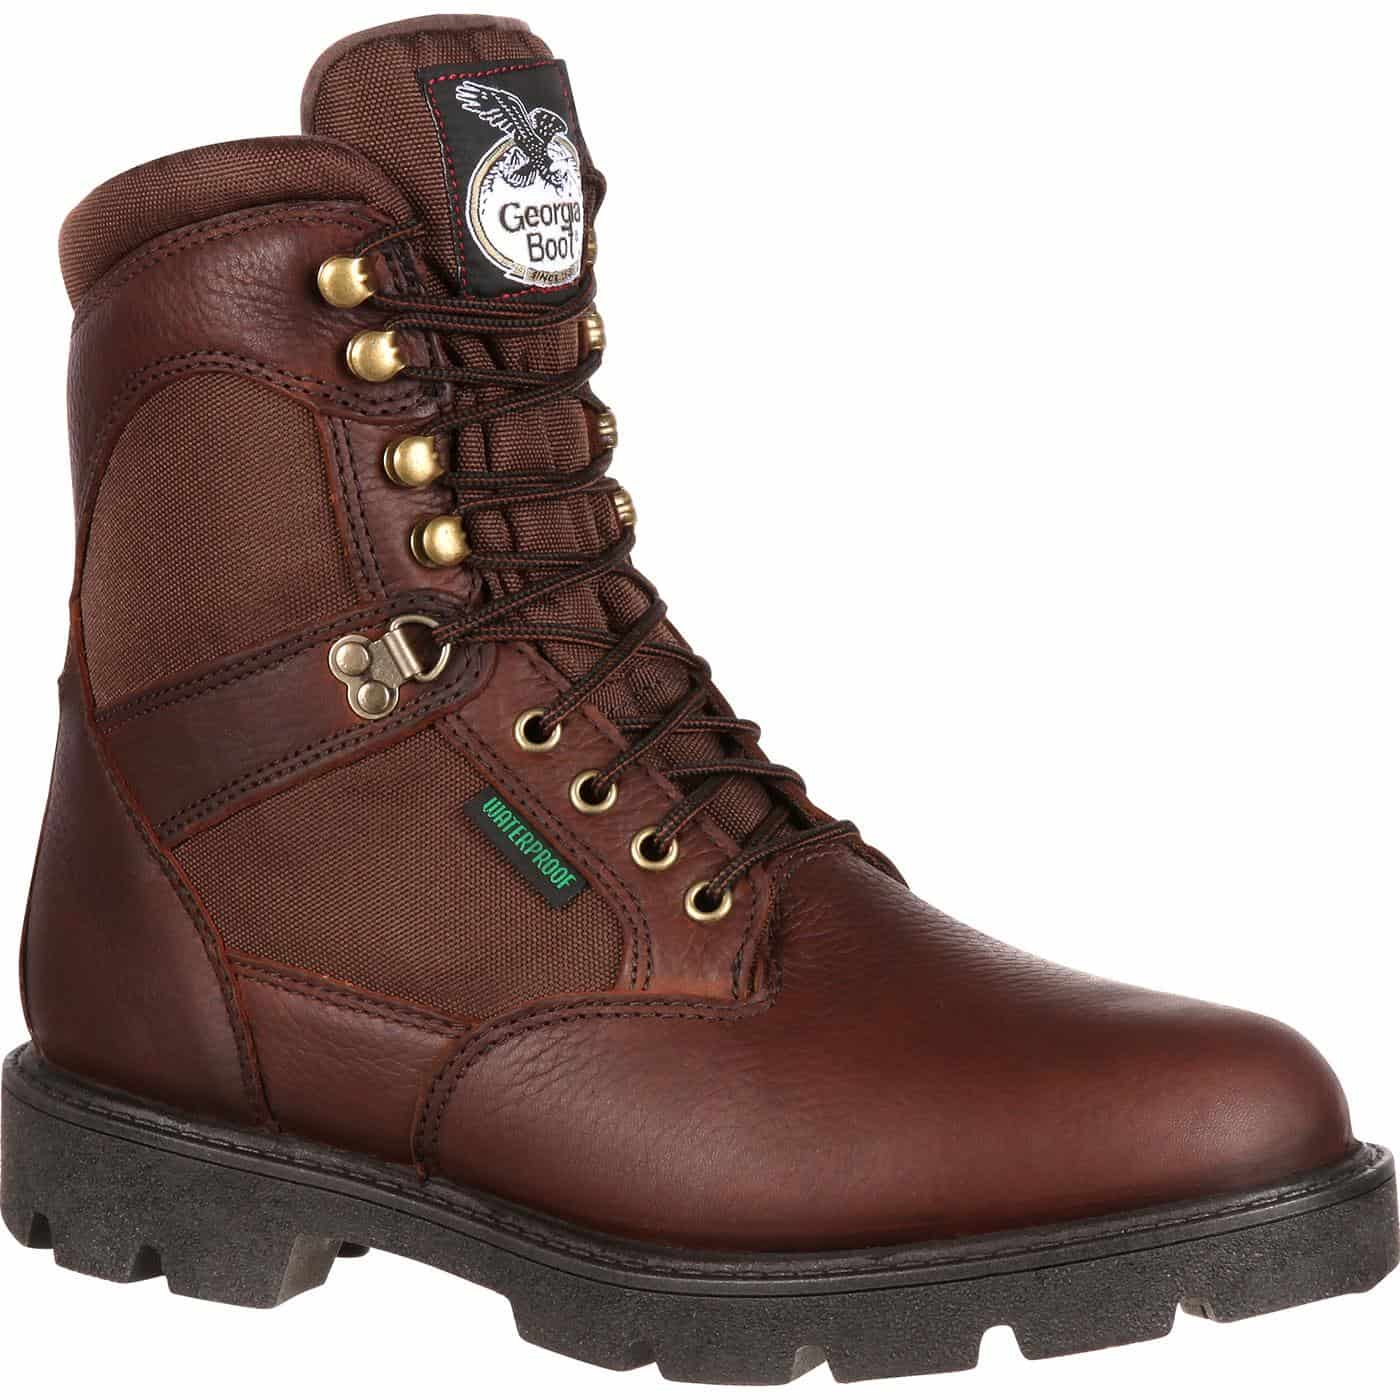 Georgia Boot Homeland Waterproof Insulated Work Boot: Is This a Good Insulated Pair?